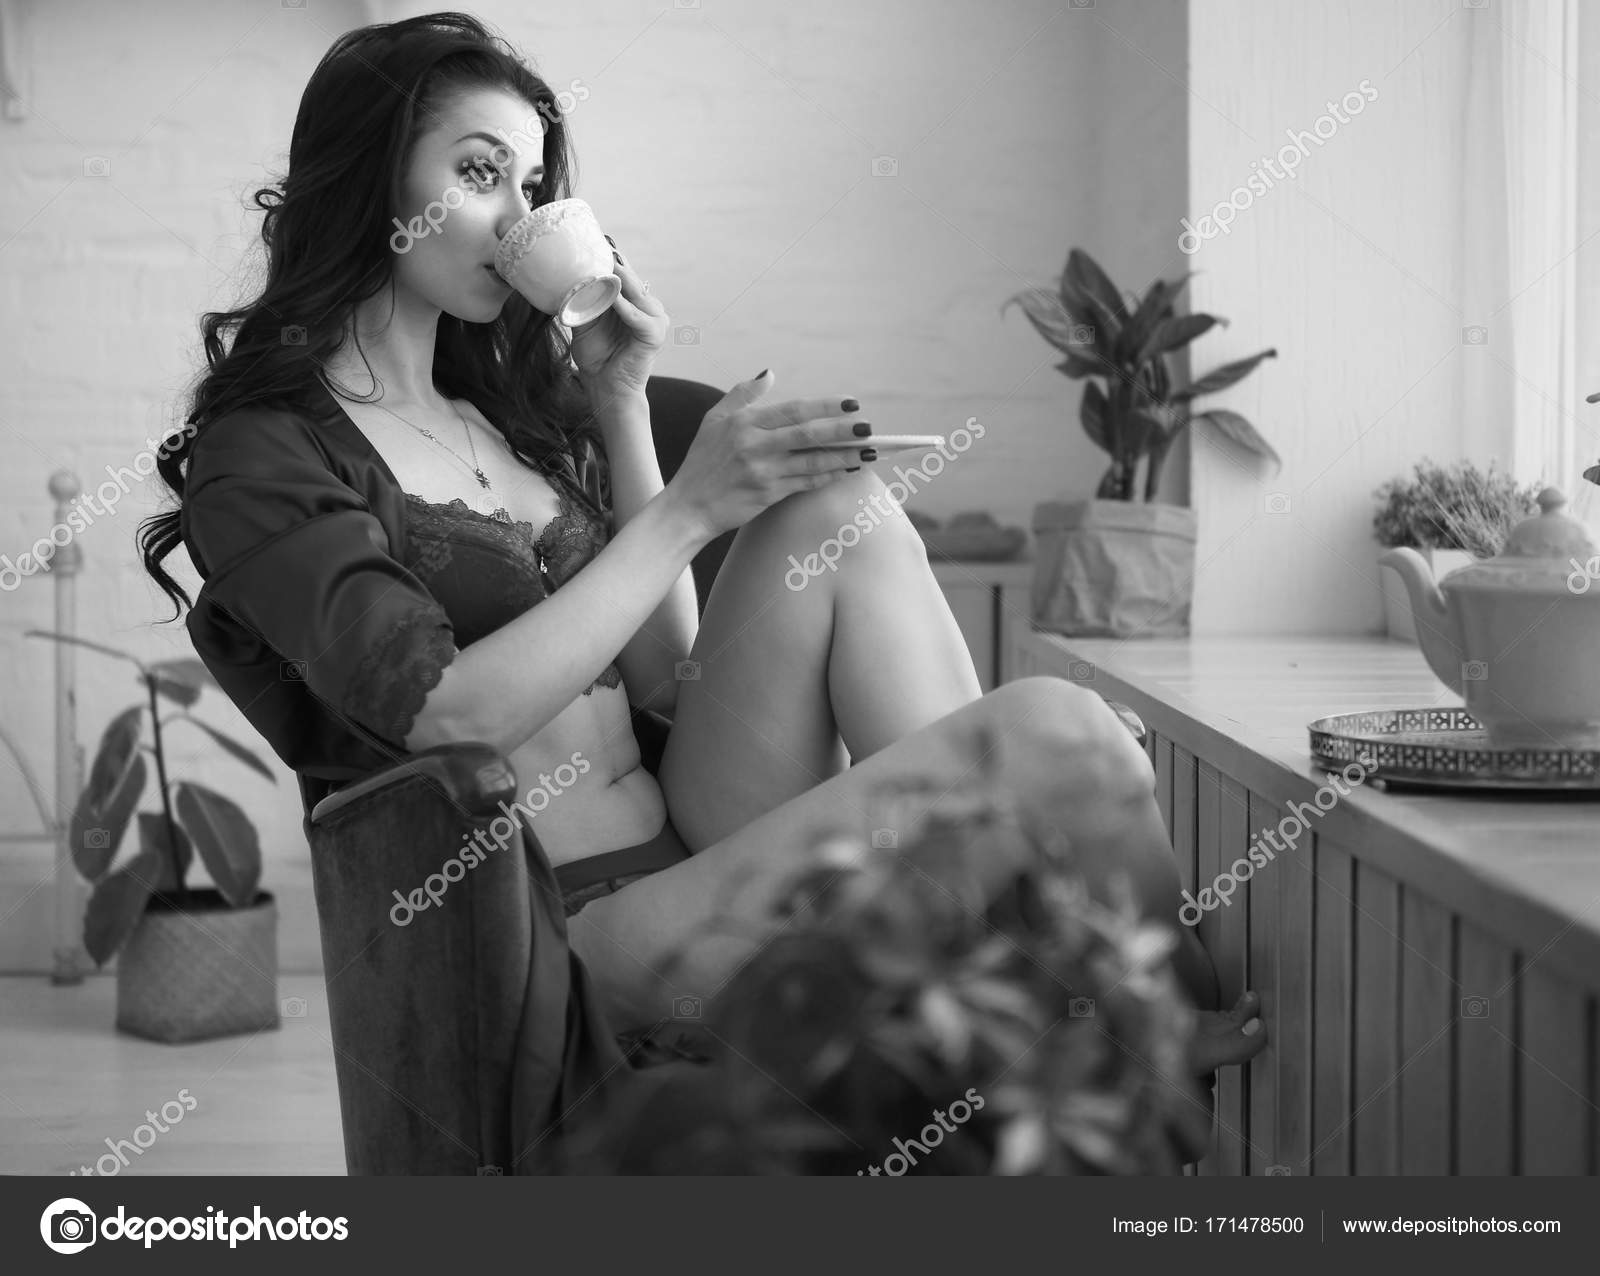 cf35d1e25 Sensual woman in sexy lingerie drinks coffe early in the morning in  terrace. Black and white picture. Old hollywood style.